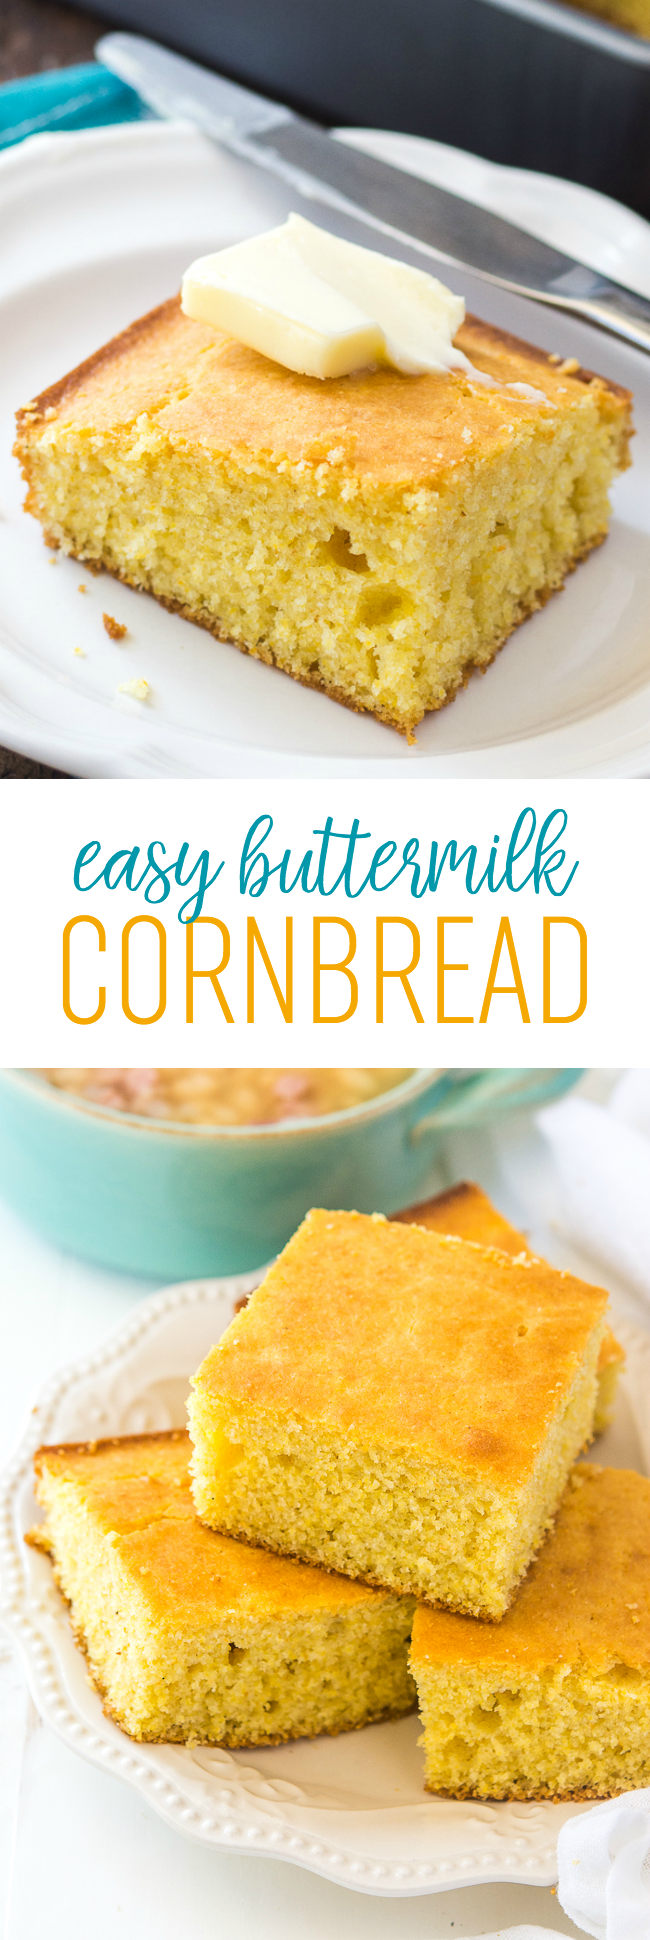 Easy Buttermilk Cornbread Recipe Homemade Sweet Cornbread Recipe Cornbread Recipe Sweet Sweet Cornbread Easy Buttermilk Cornbread